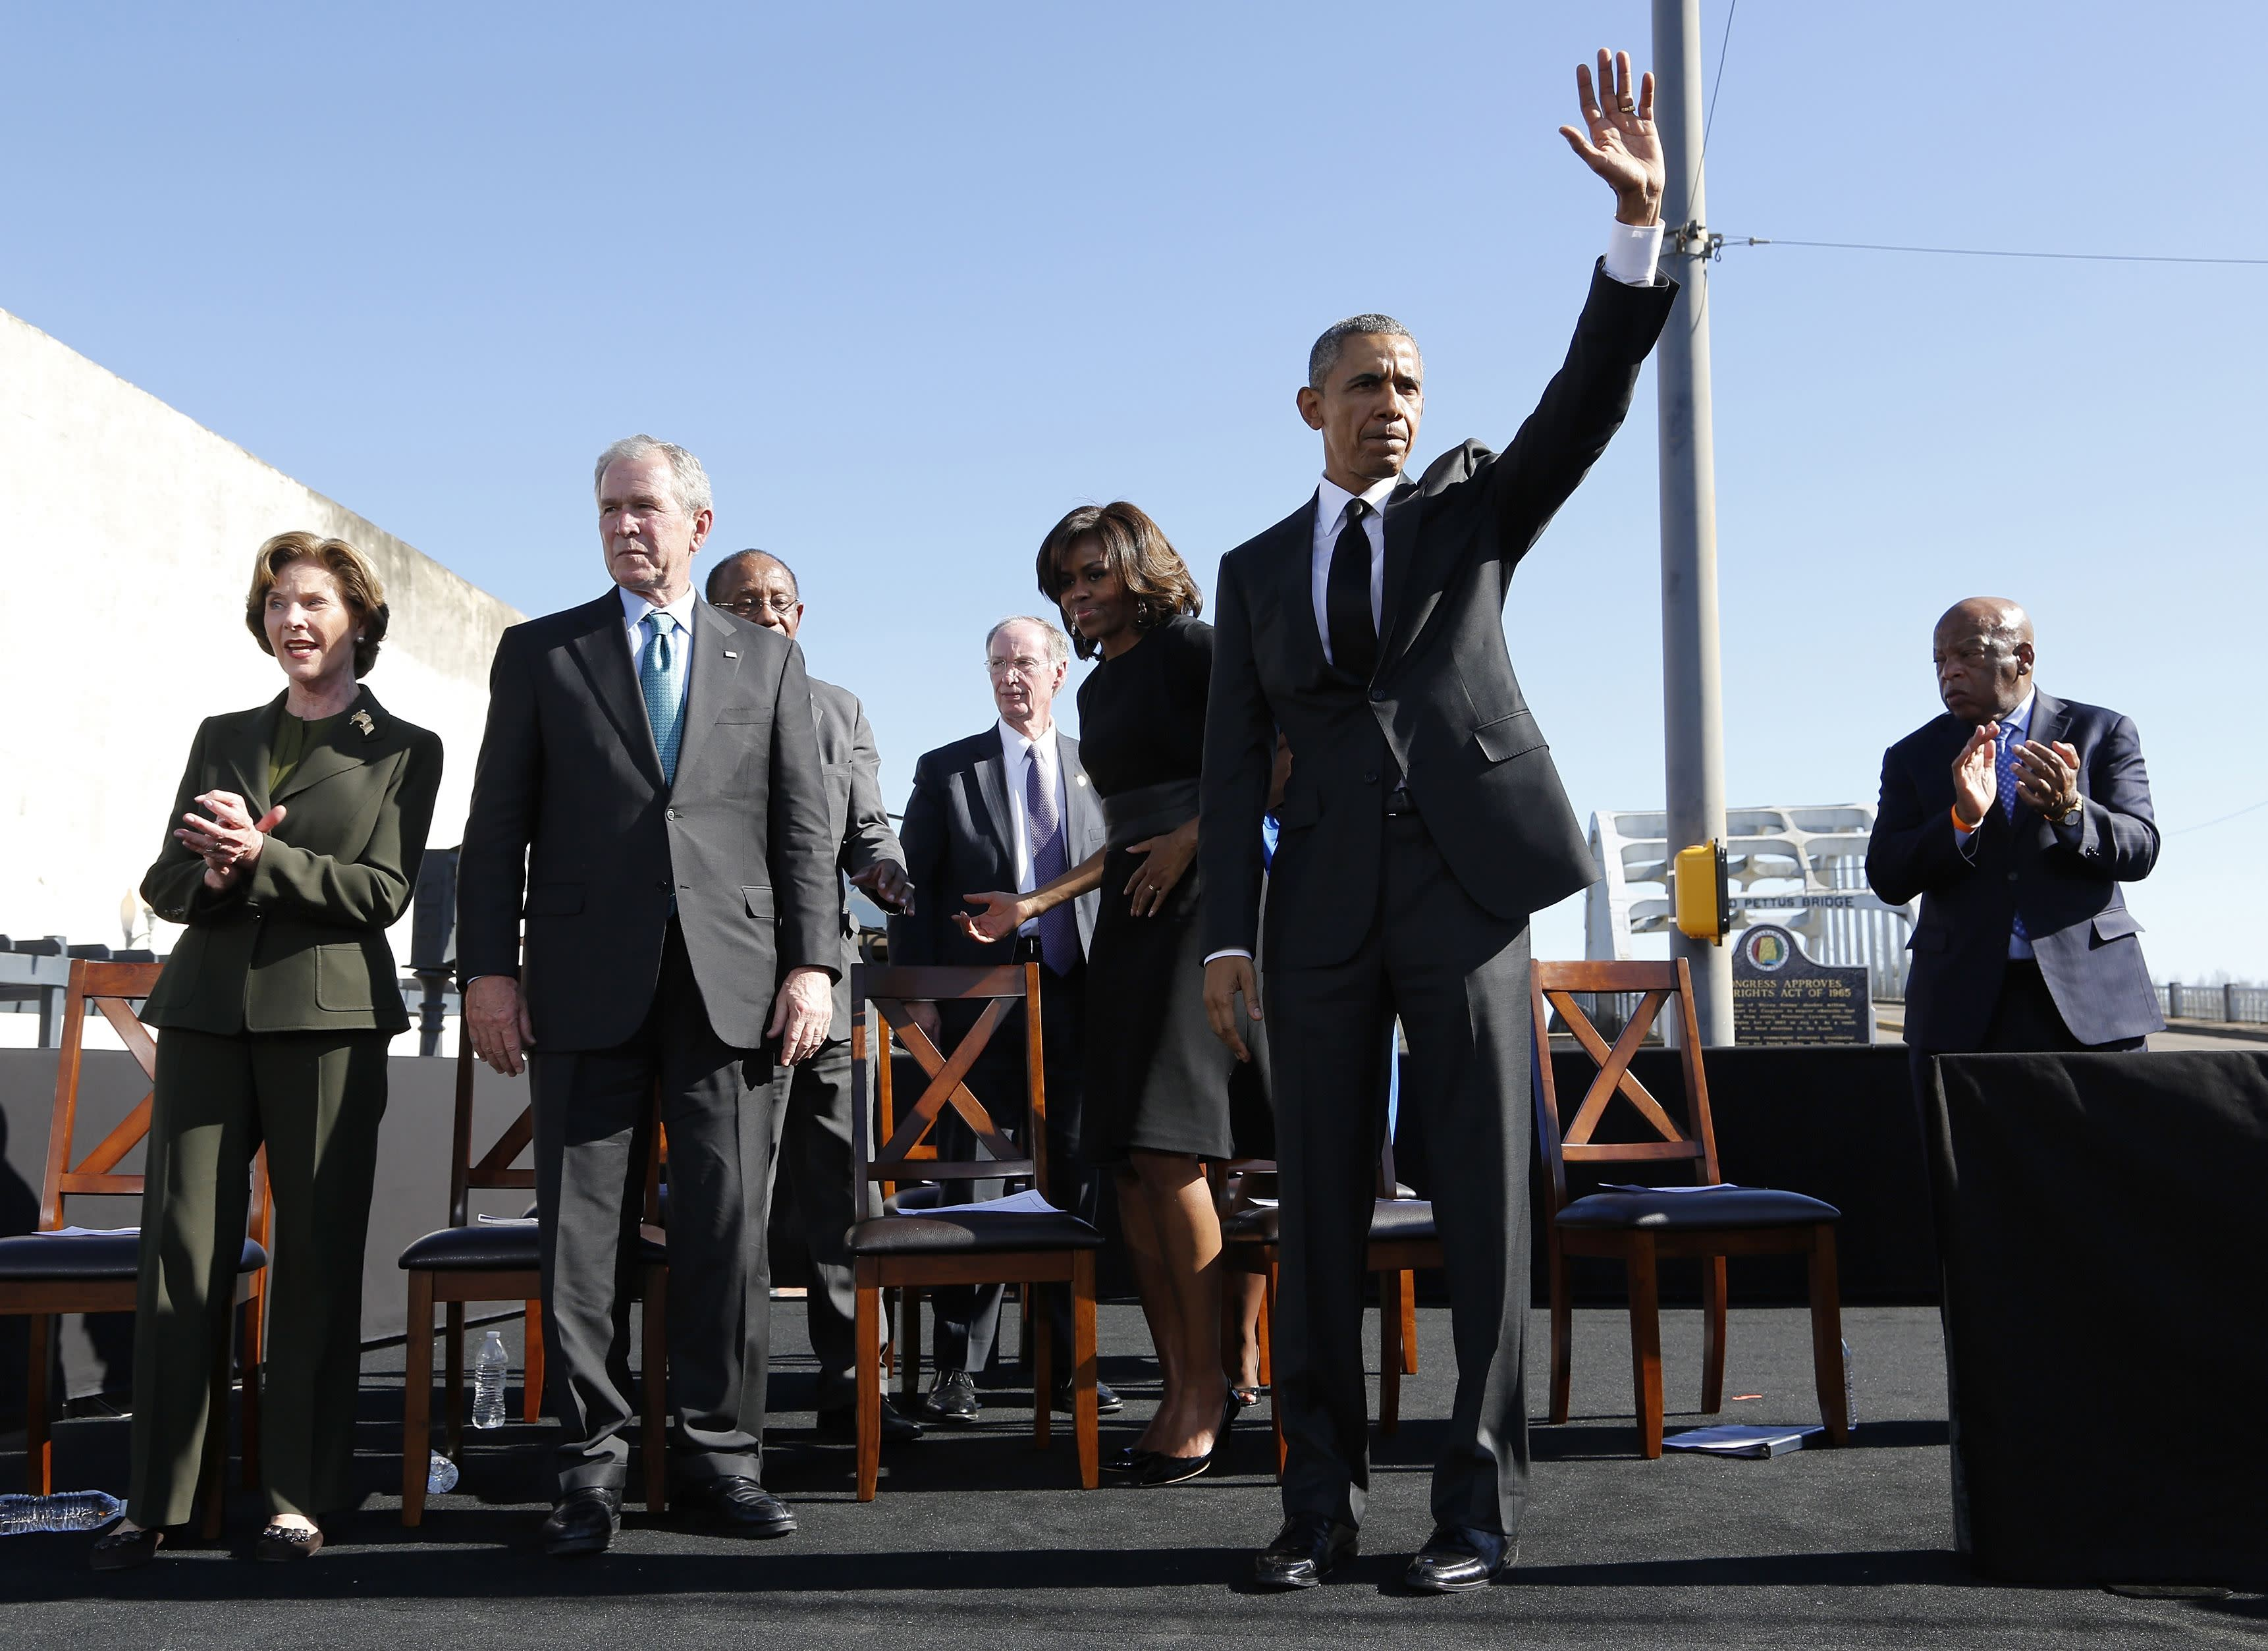 U.S. President Barack Obama (2nd R) acknowledges the crowd after remarks at the Edmund Pettus Bridge in Selma, Alabama, March 7, 2015. The remarks come on the 50th anniversary of the 'Bloody Sunday' march at the bridge, where police and state troopers beat and used tear gas against peaceful marchers who were advocating against racial discrimination at the voting booth. Also pictured are former first lady Laura Bush (L), former president George W Bush (2nd L) and first lady Michelle Obama (C). REUTERS/Jonathan Ernst (UNITED STATES - Tags: POLITICS ANNIVERSARY SOCIETY)